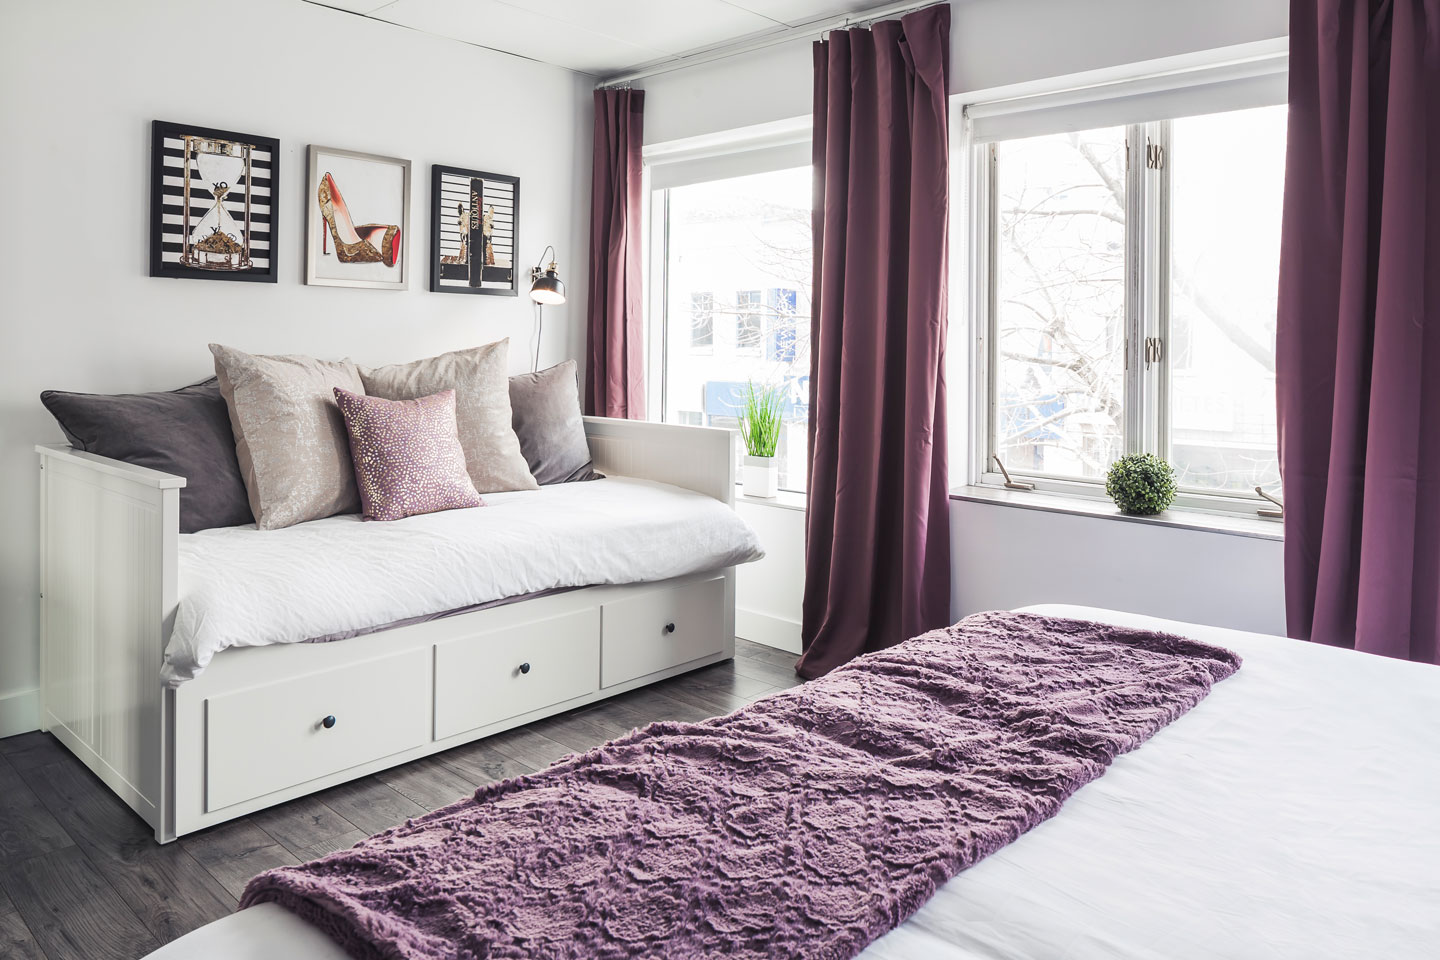 Entertainer: bedroom with convertible king bed (closed)